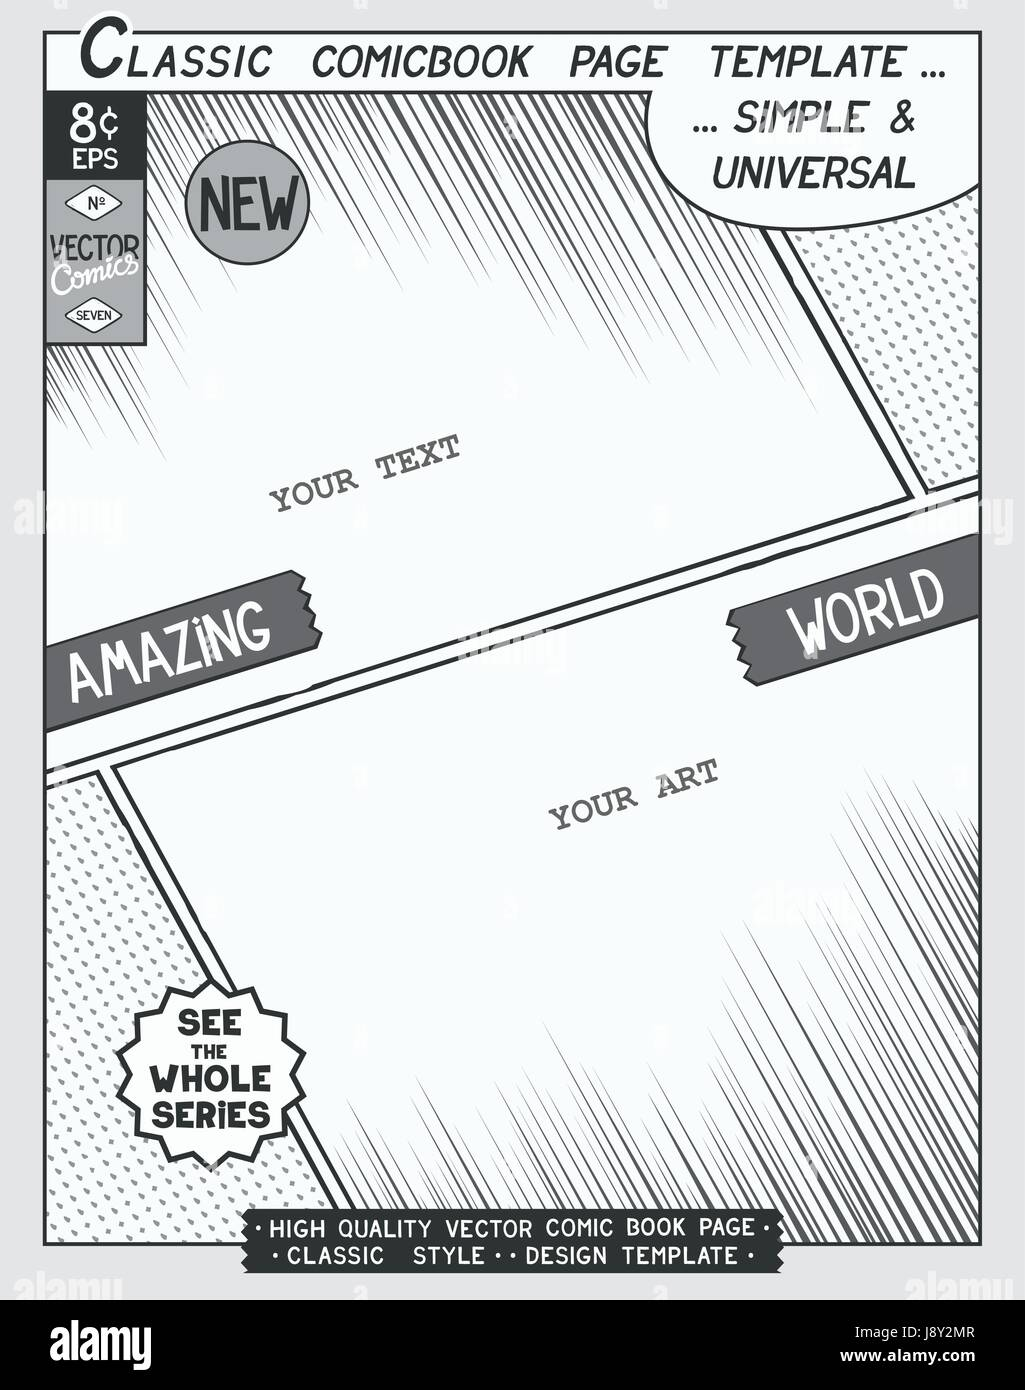 Free Space Comic Book Page Template Comics Layout And Action With